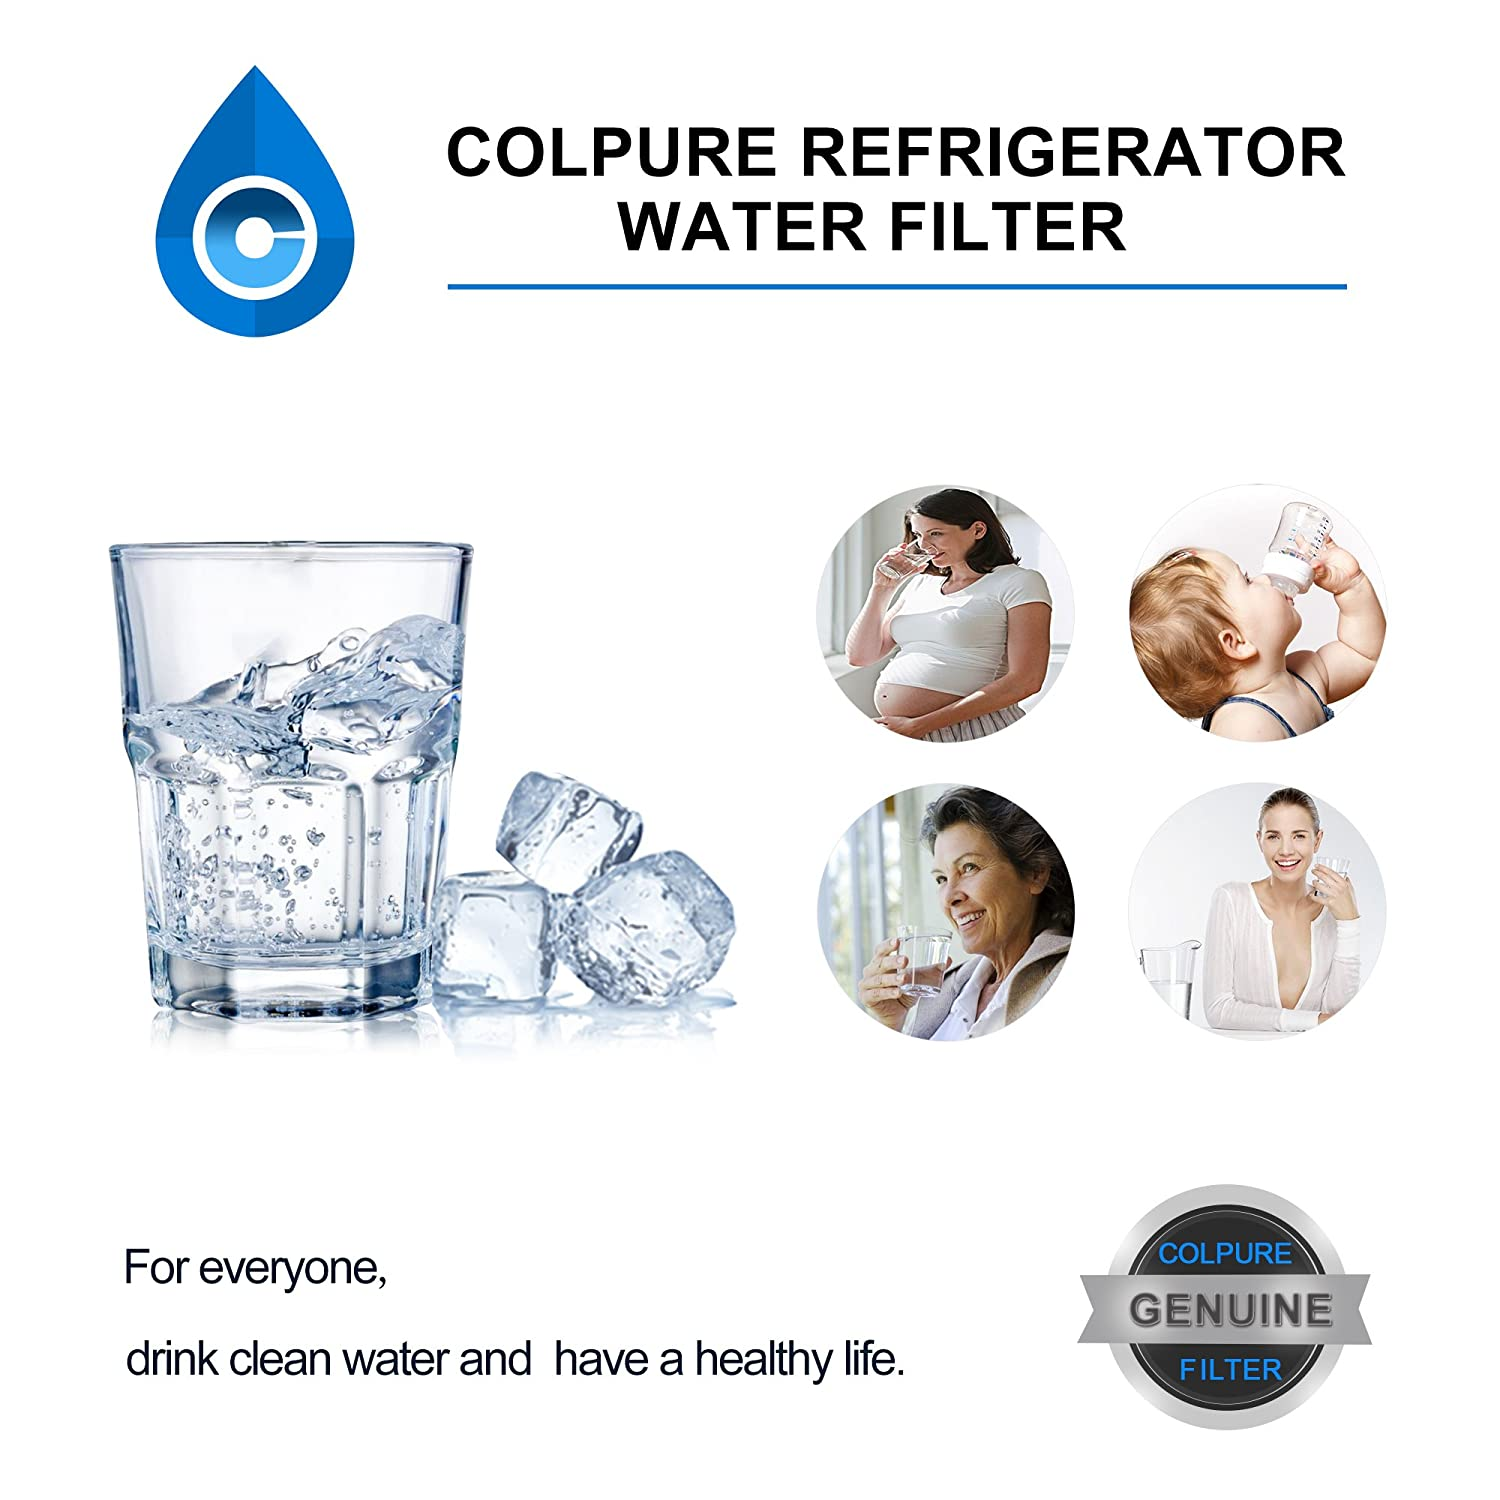 Amazon.com - Frigidaire ULTRAWF WF3CB Refrigerator Water Filter,  KENNMORE-469999 with WQA Certificate, 3 PACK(White) -